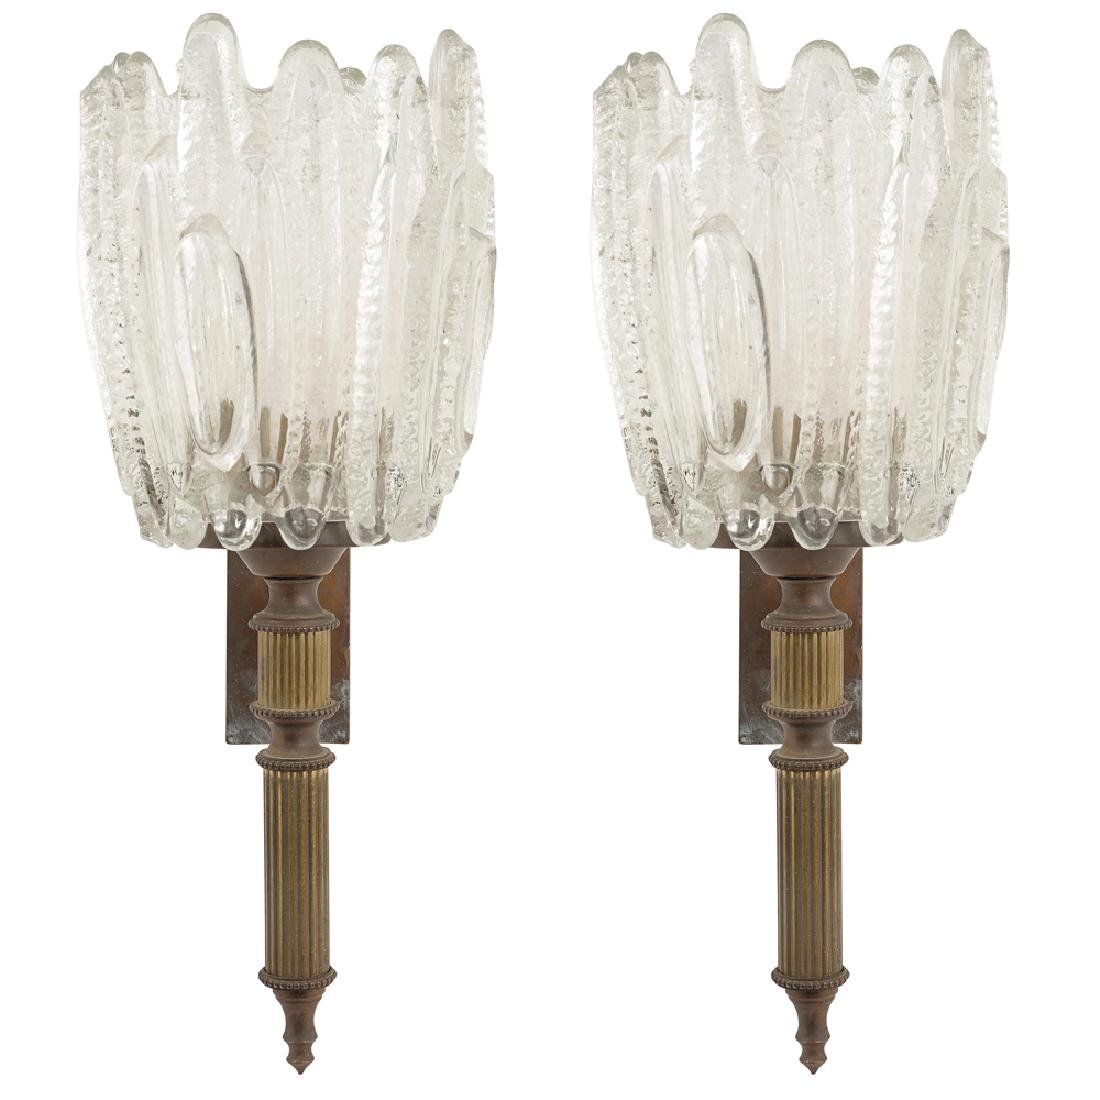 Pair of appliques France 20th century 30x15 cm.